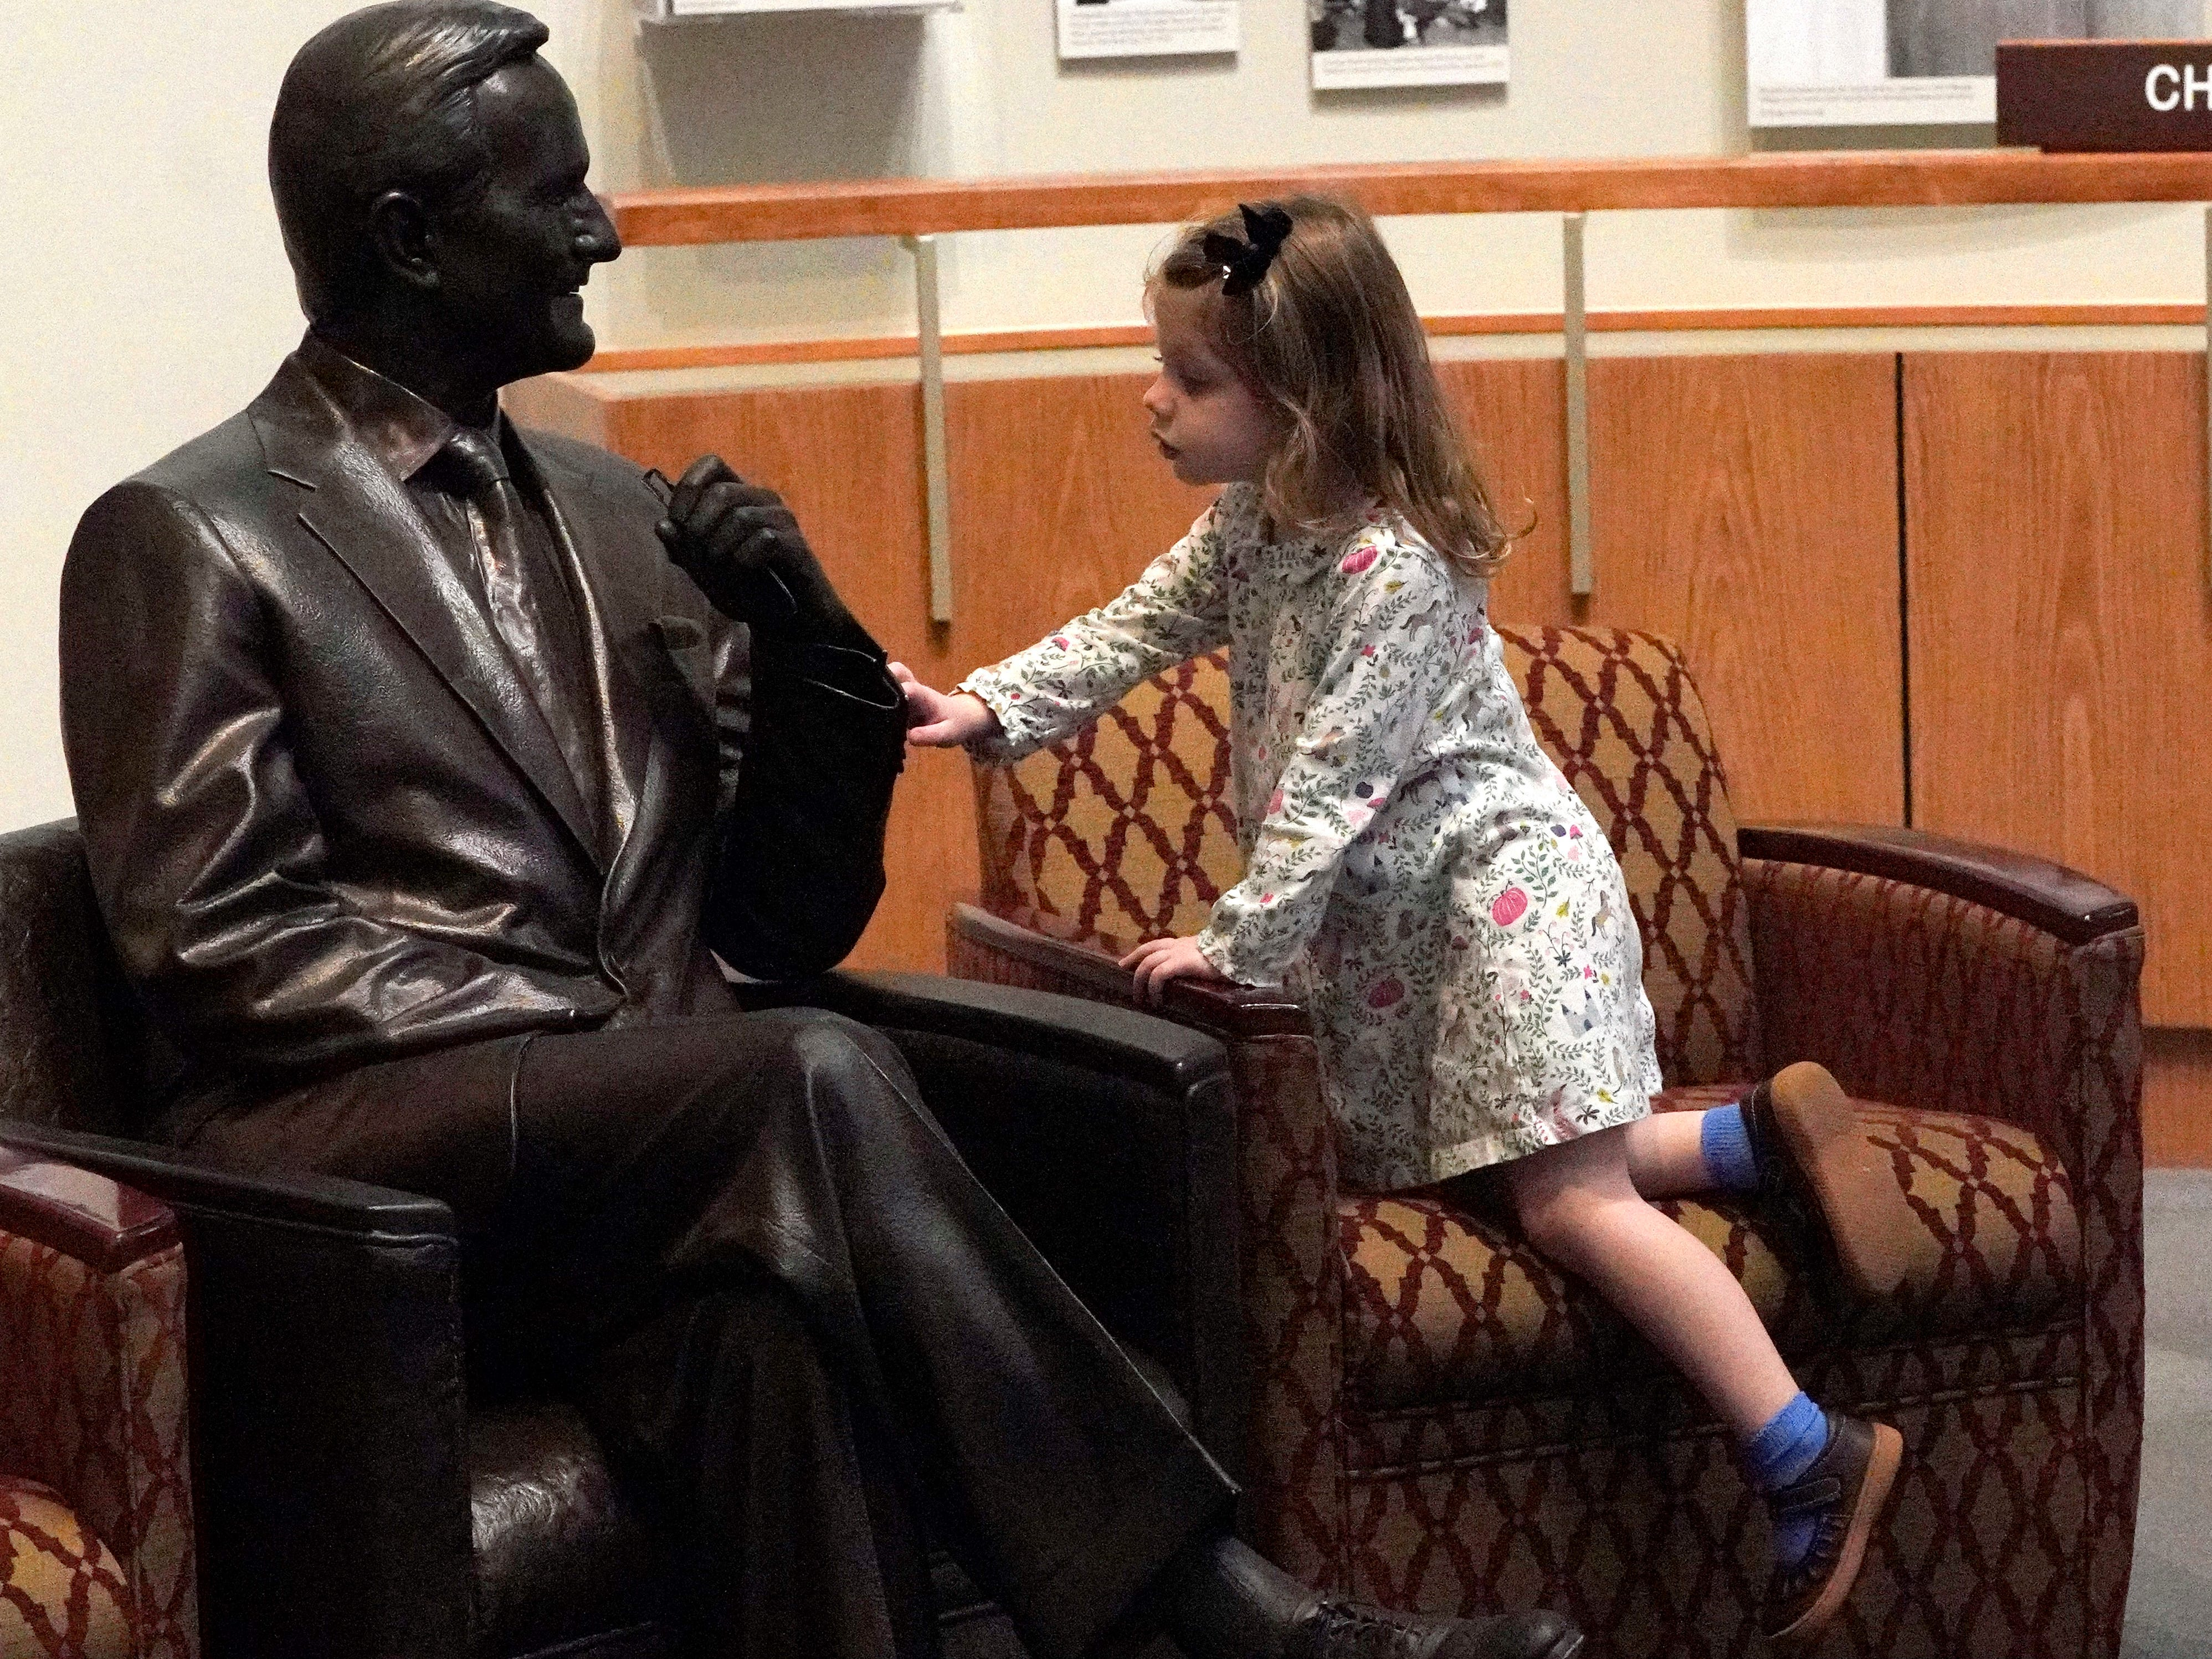 Caroline Western, 3, of College Station, Texas, touches at a statue of George H.W. Bush inside the George H.W. Bush Presidential Library and Museum Saturday, Dec. 1, 2018, in College Station.